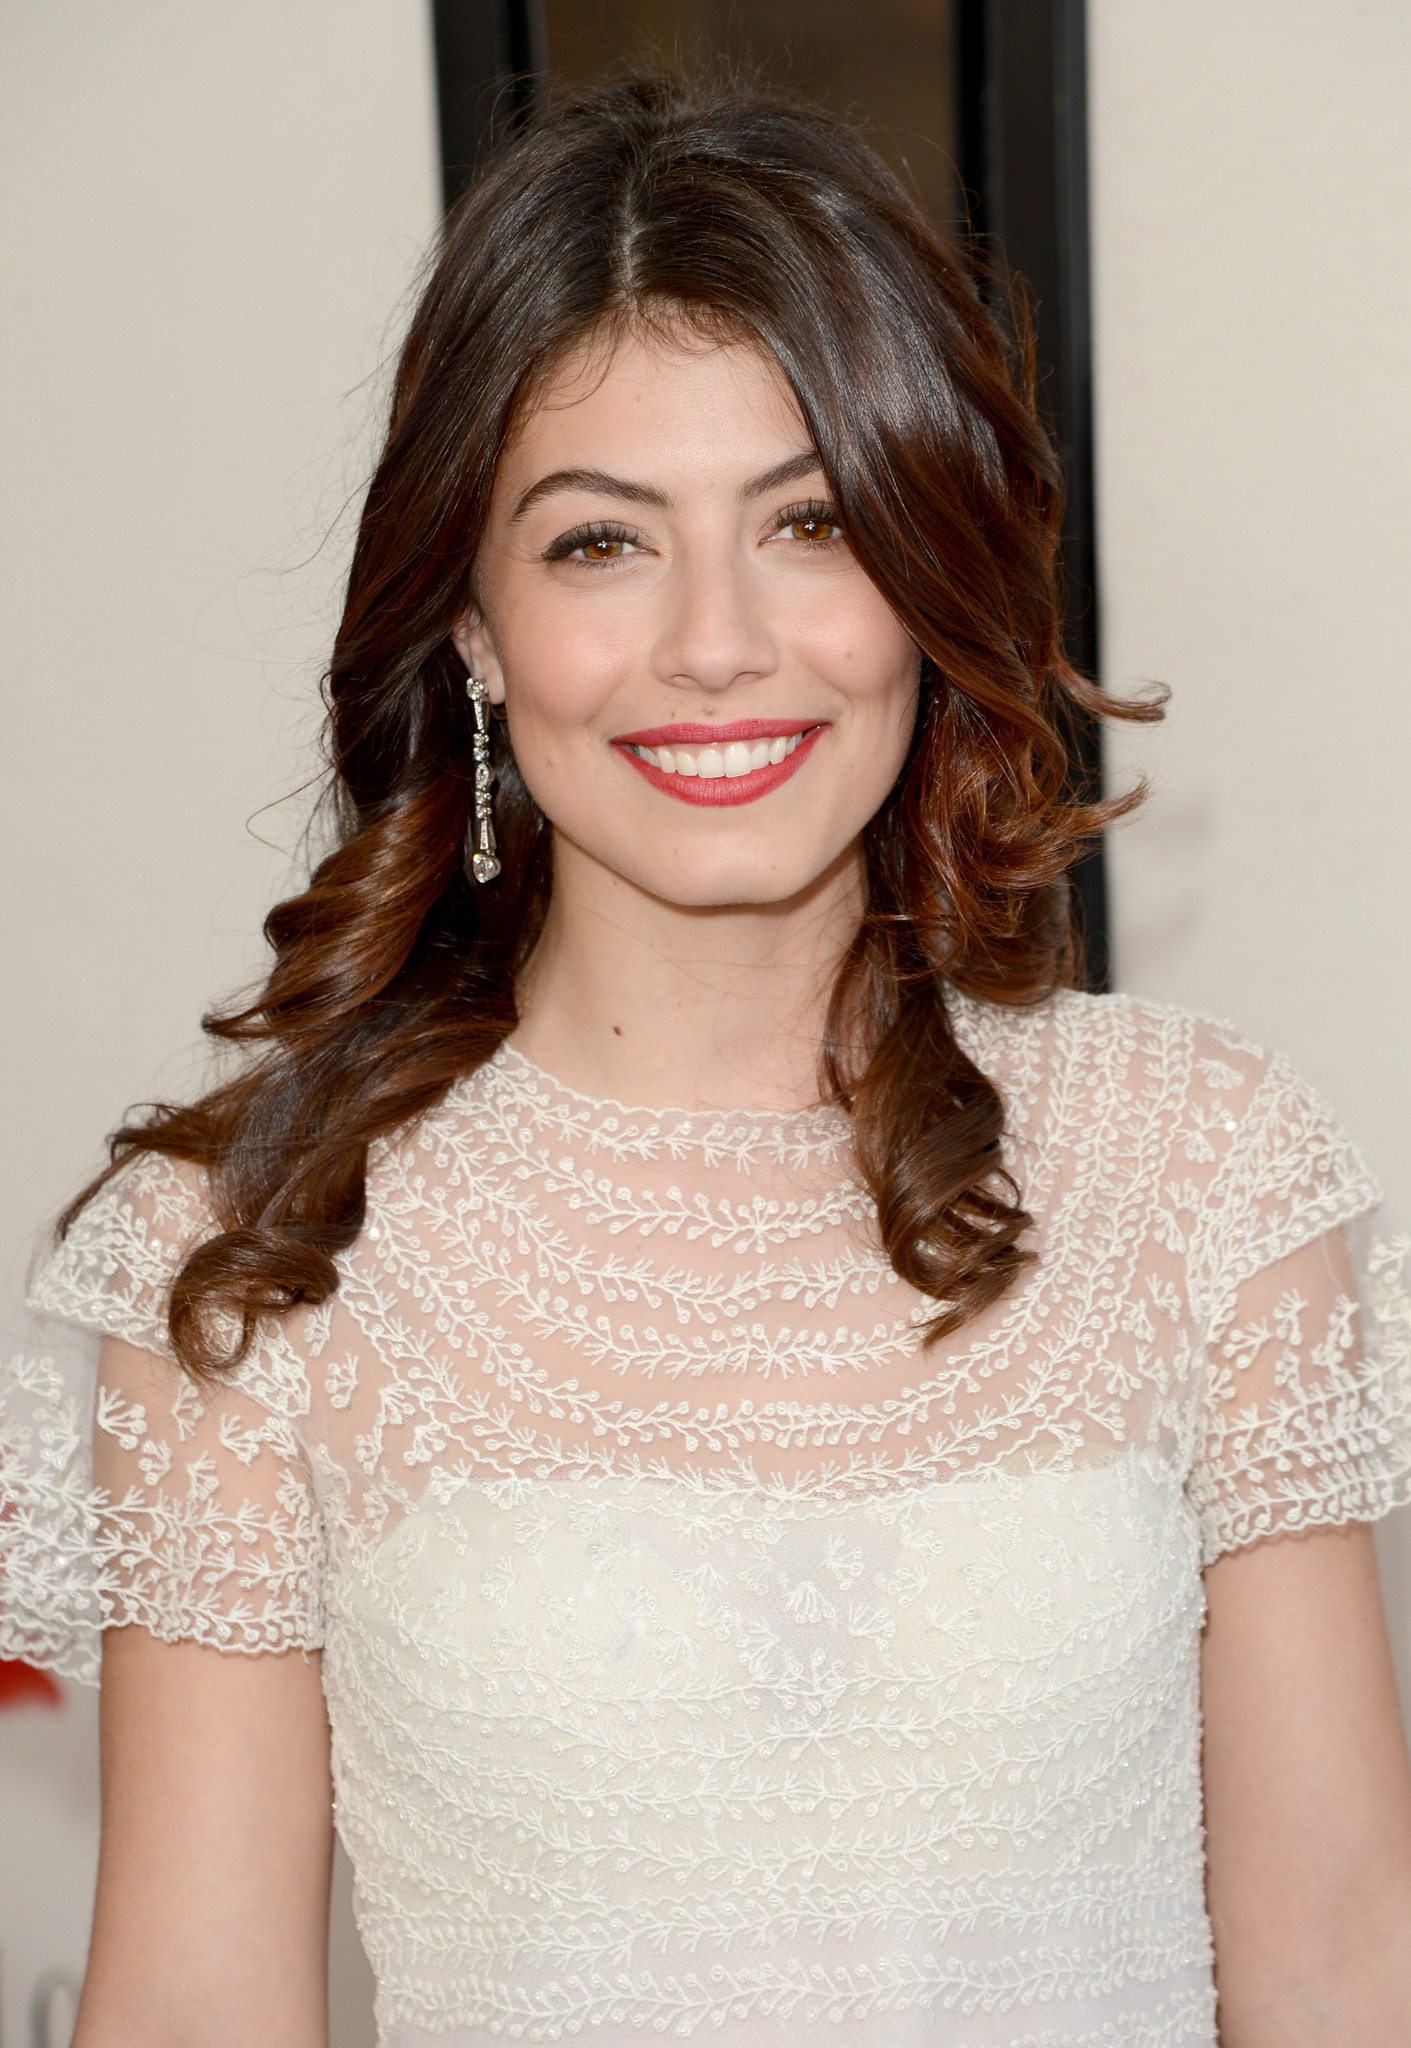 Alessandra Mastronardi Alessandra Mastronardi new images